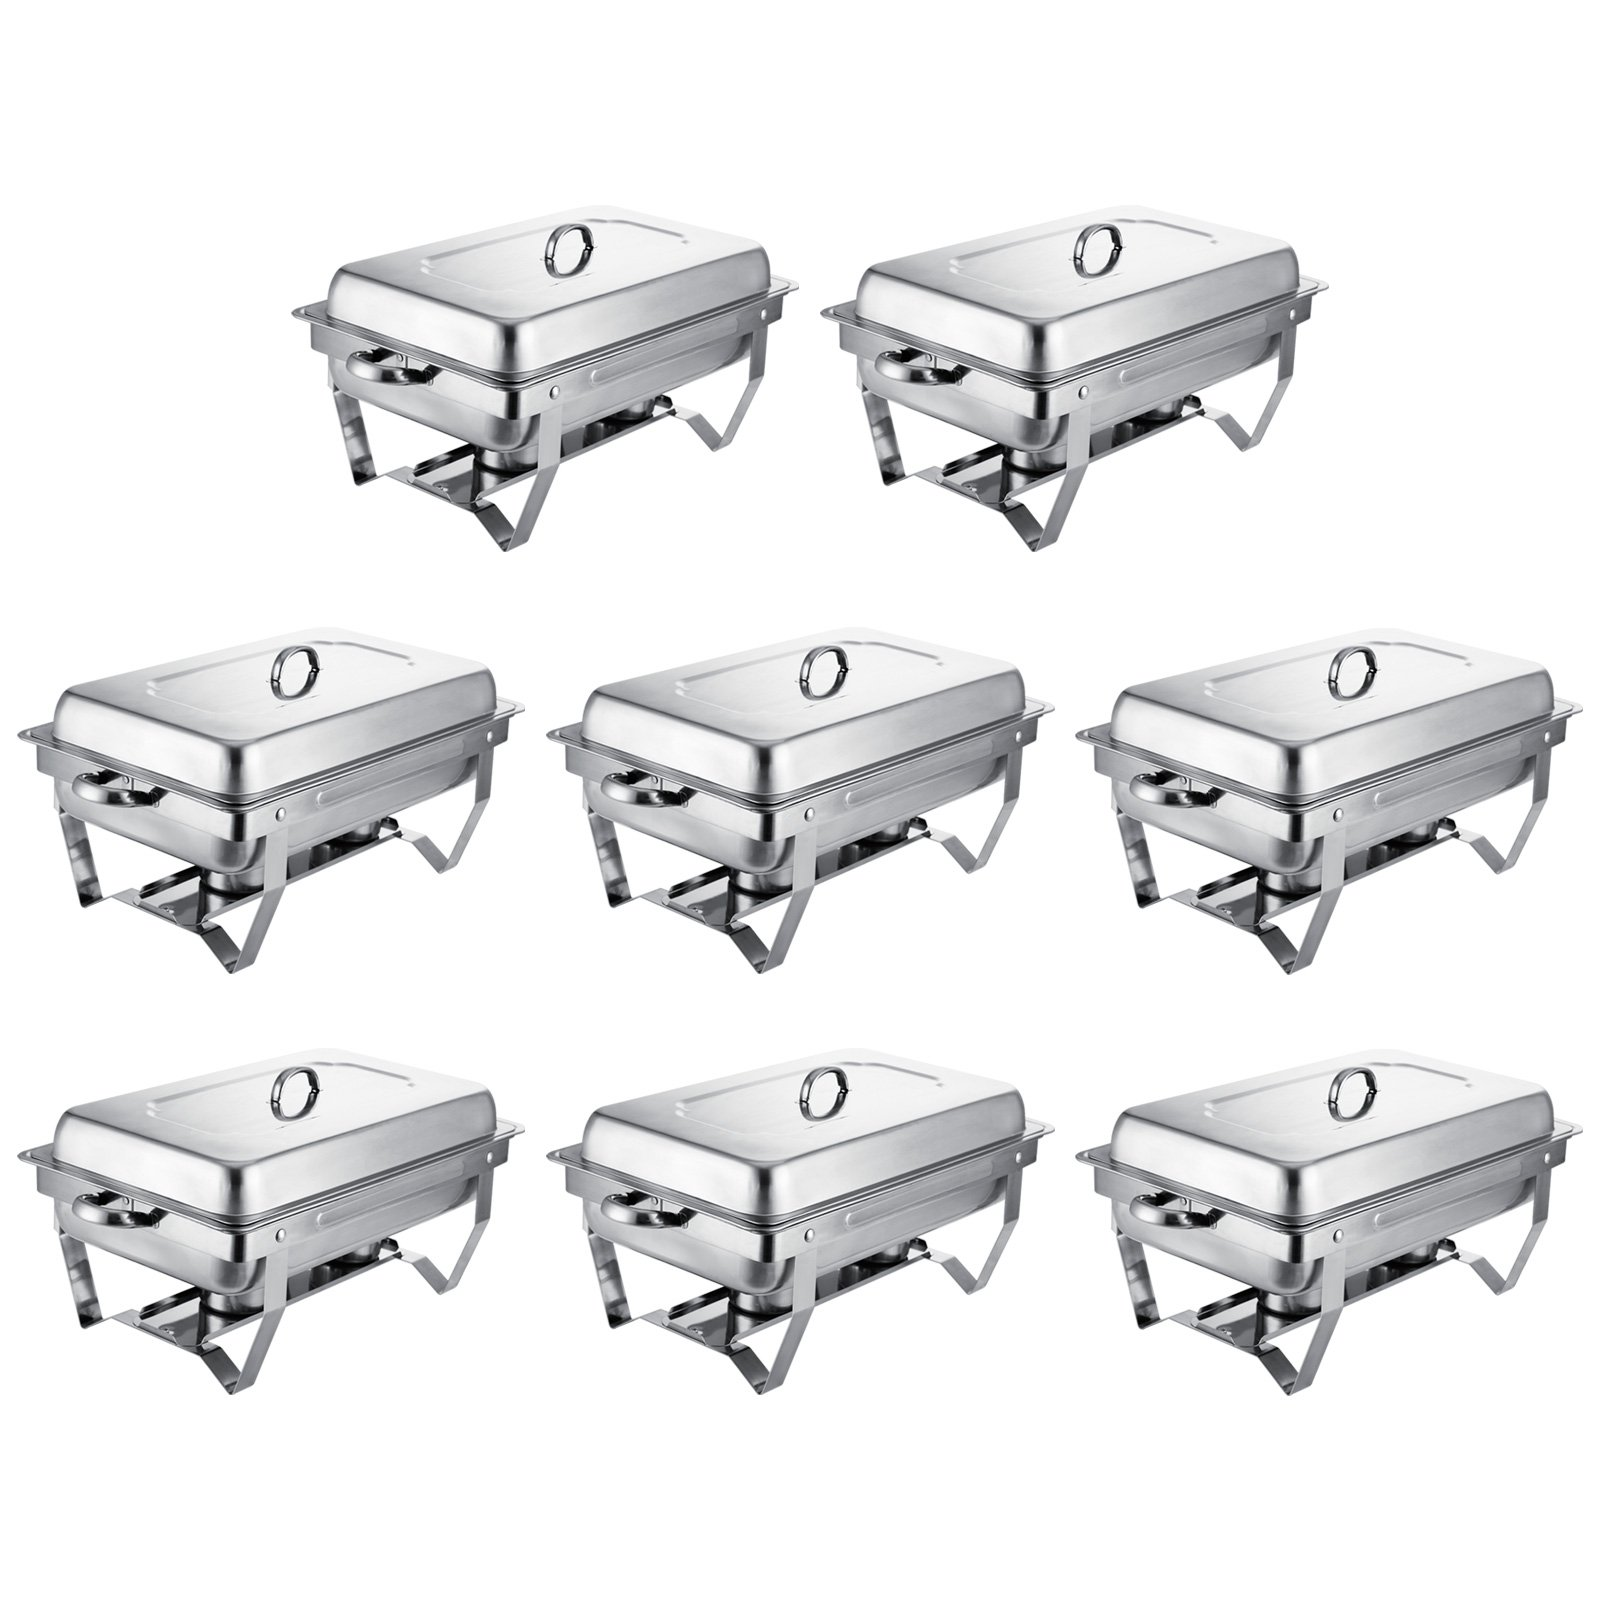 Mophorn Chafing Dish 8 Packs 8 Quart Stainless Steel Chafer Full Size Rectangular Chafers for Catering Buffet Warmer Set with Folding Frame (8 Packs) by Mophorn